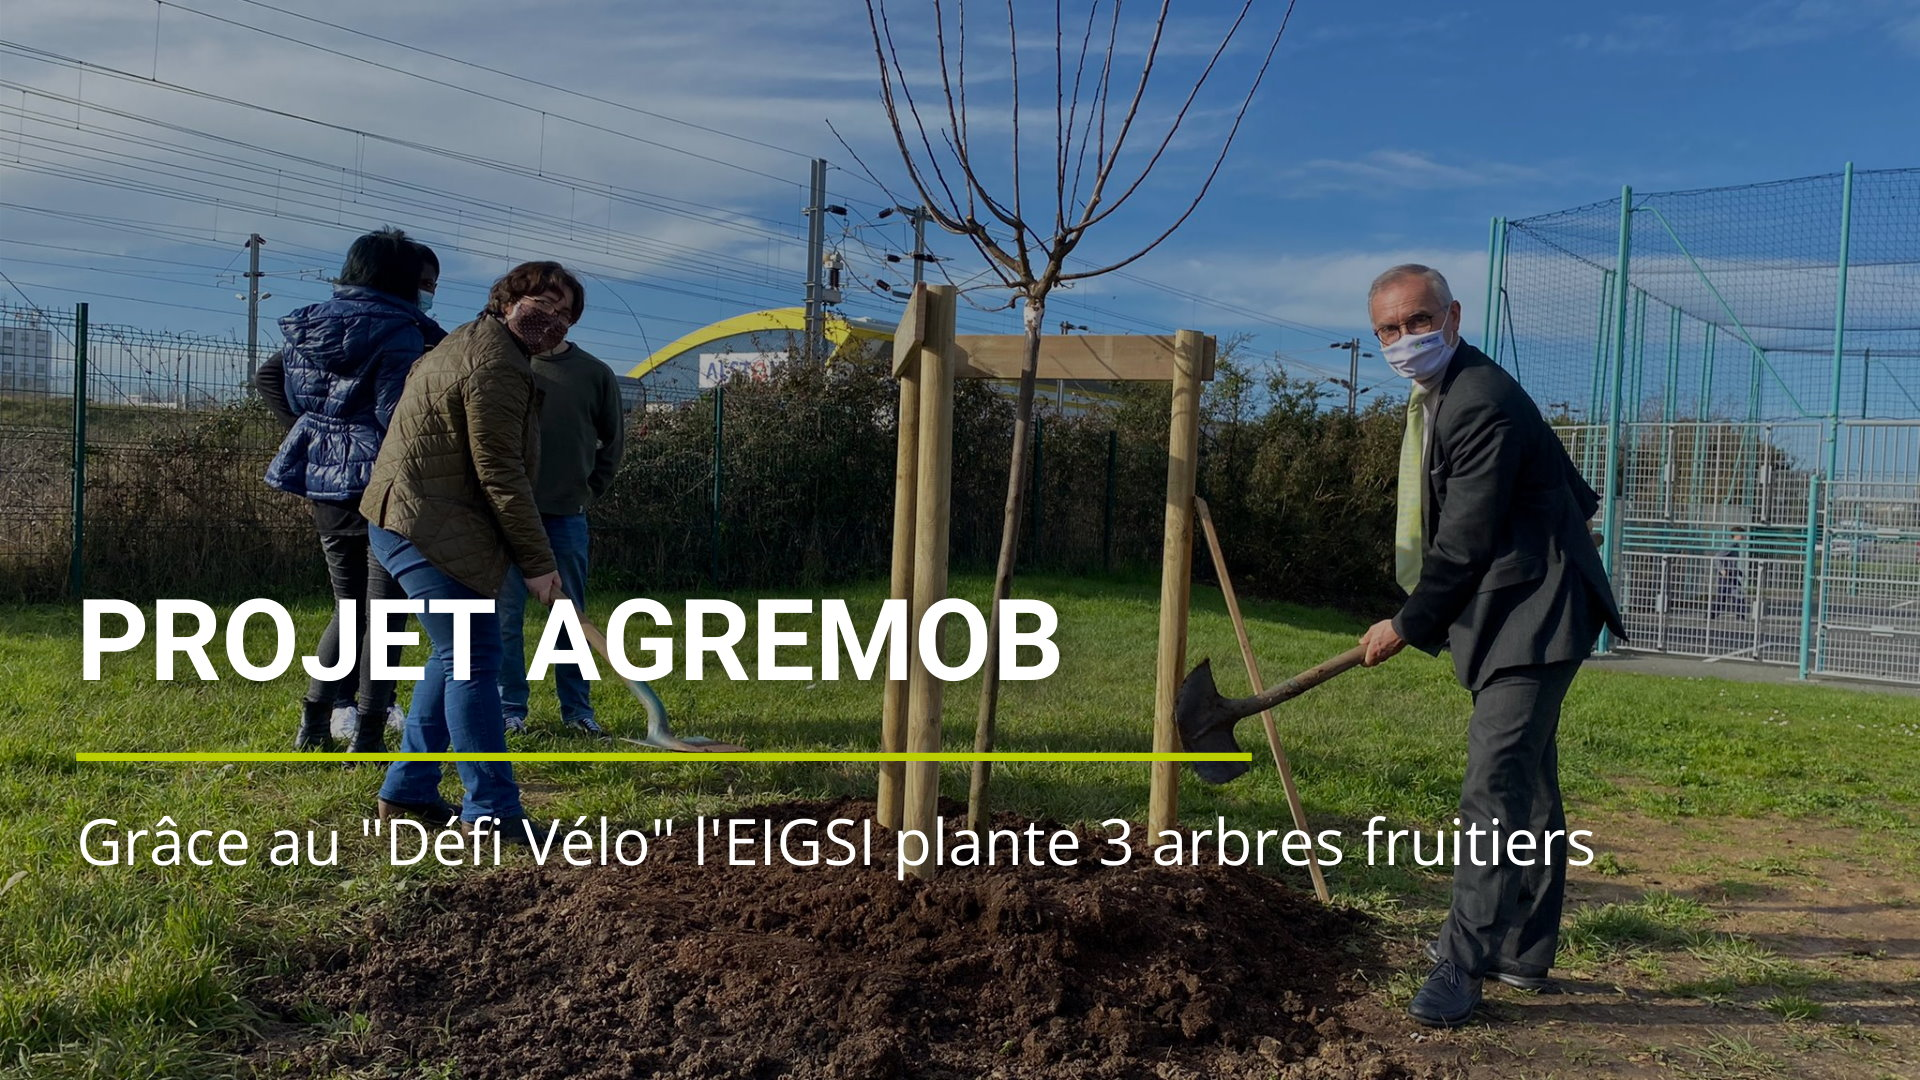 agremob defi velo